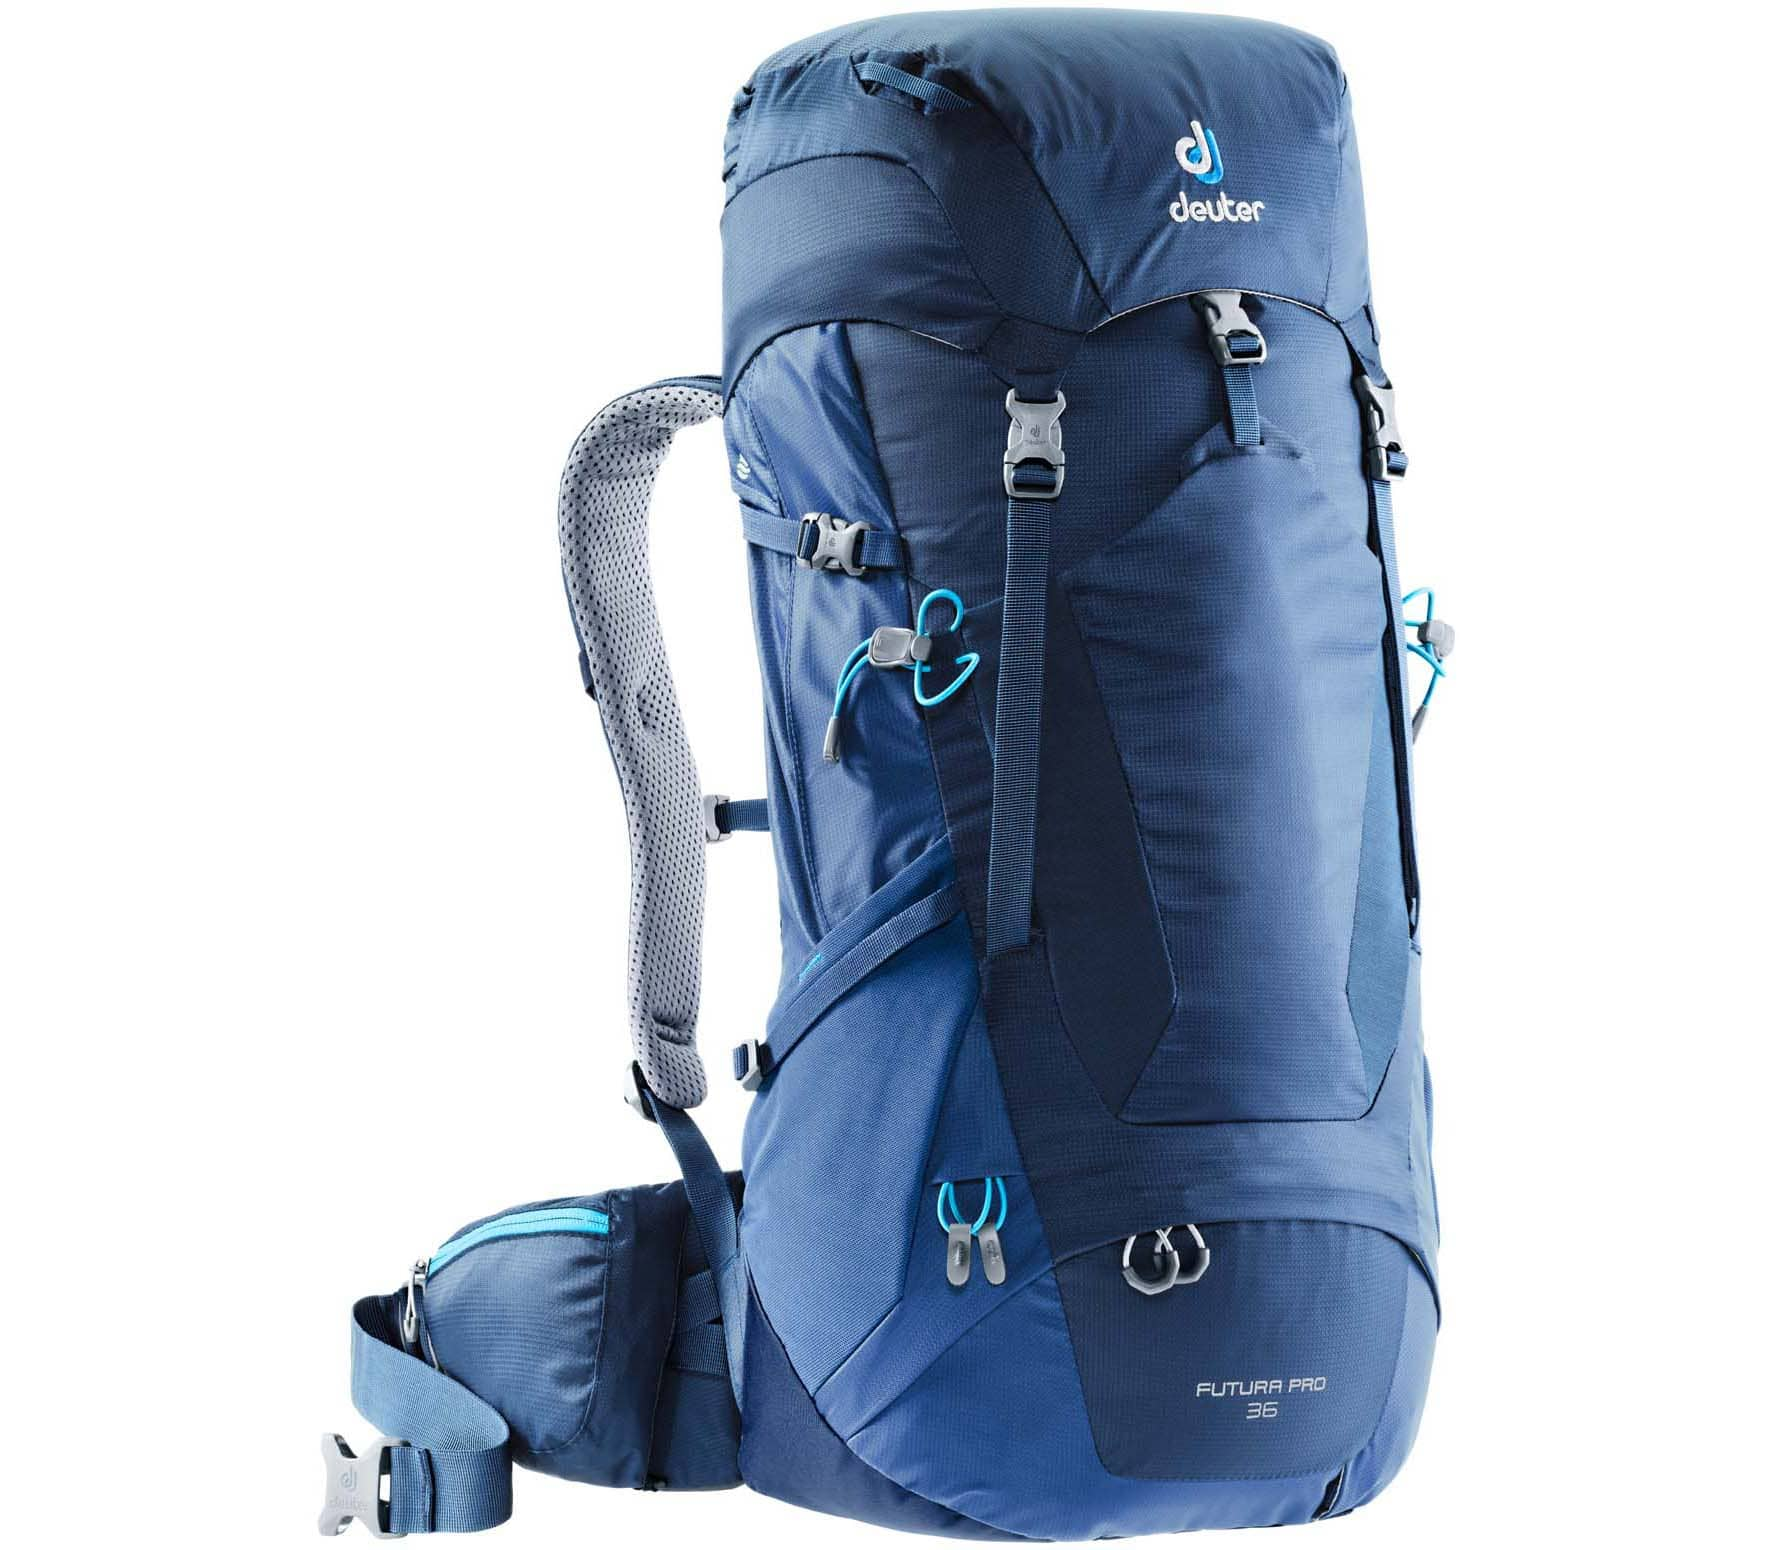 Deuter - Futura PRO 36 hiking backpack (blue)